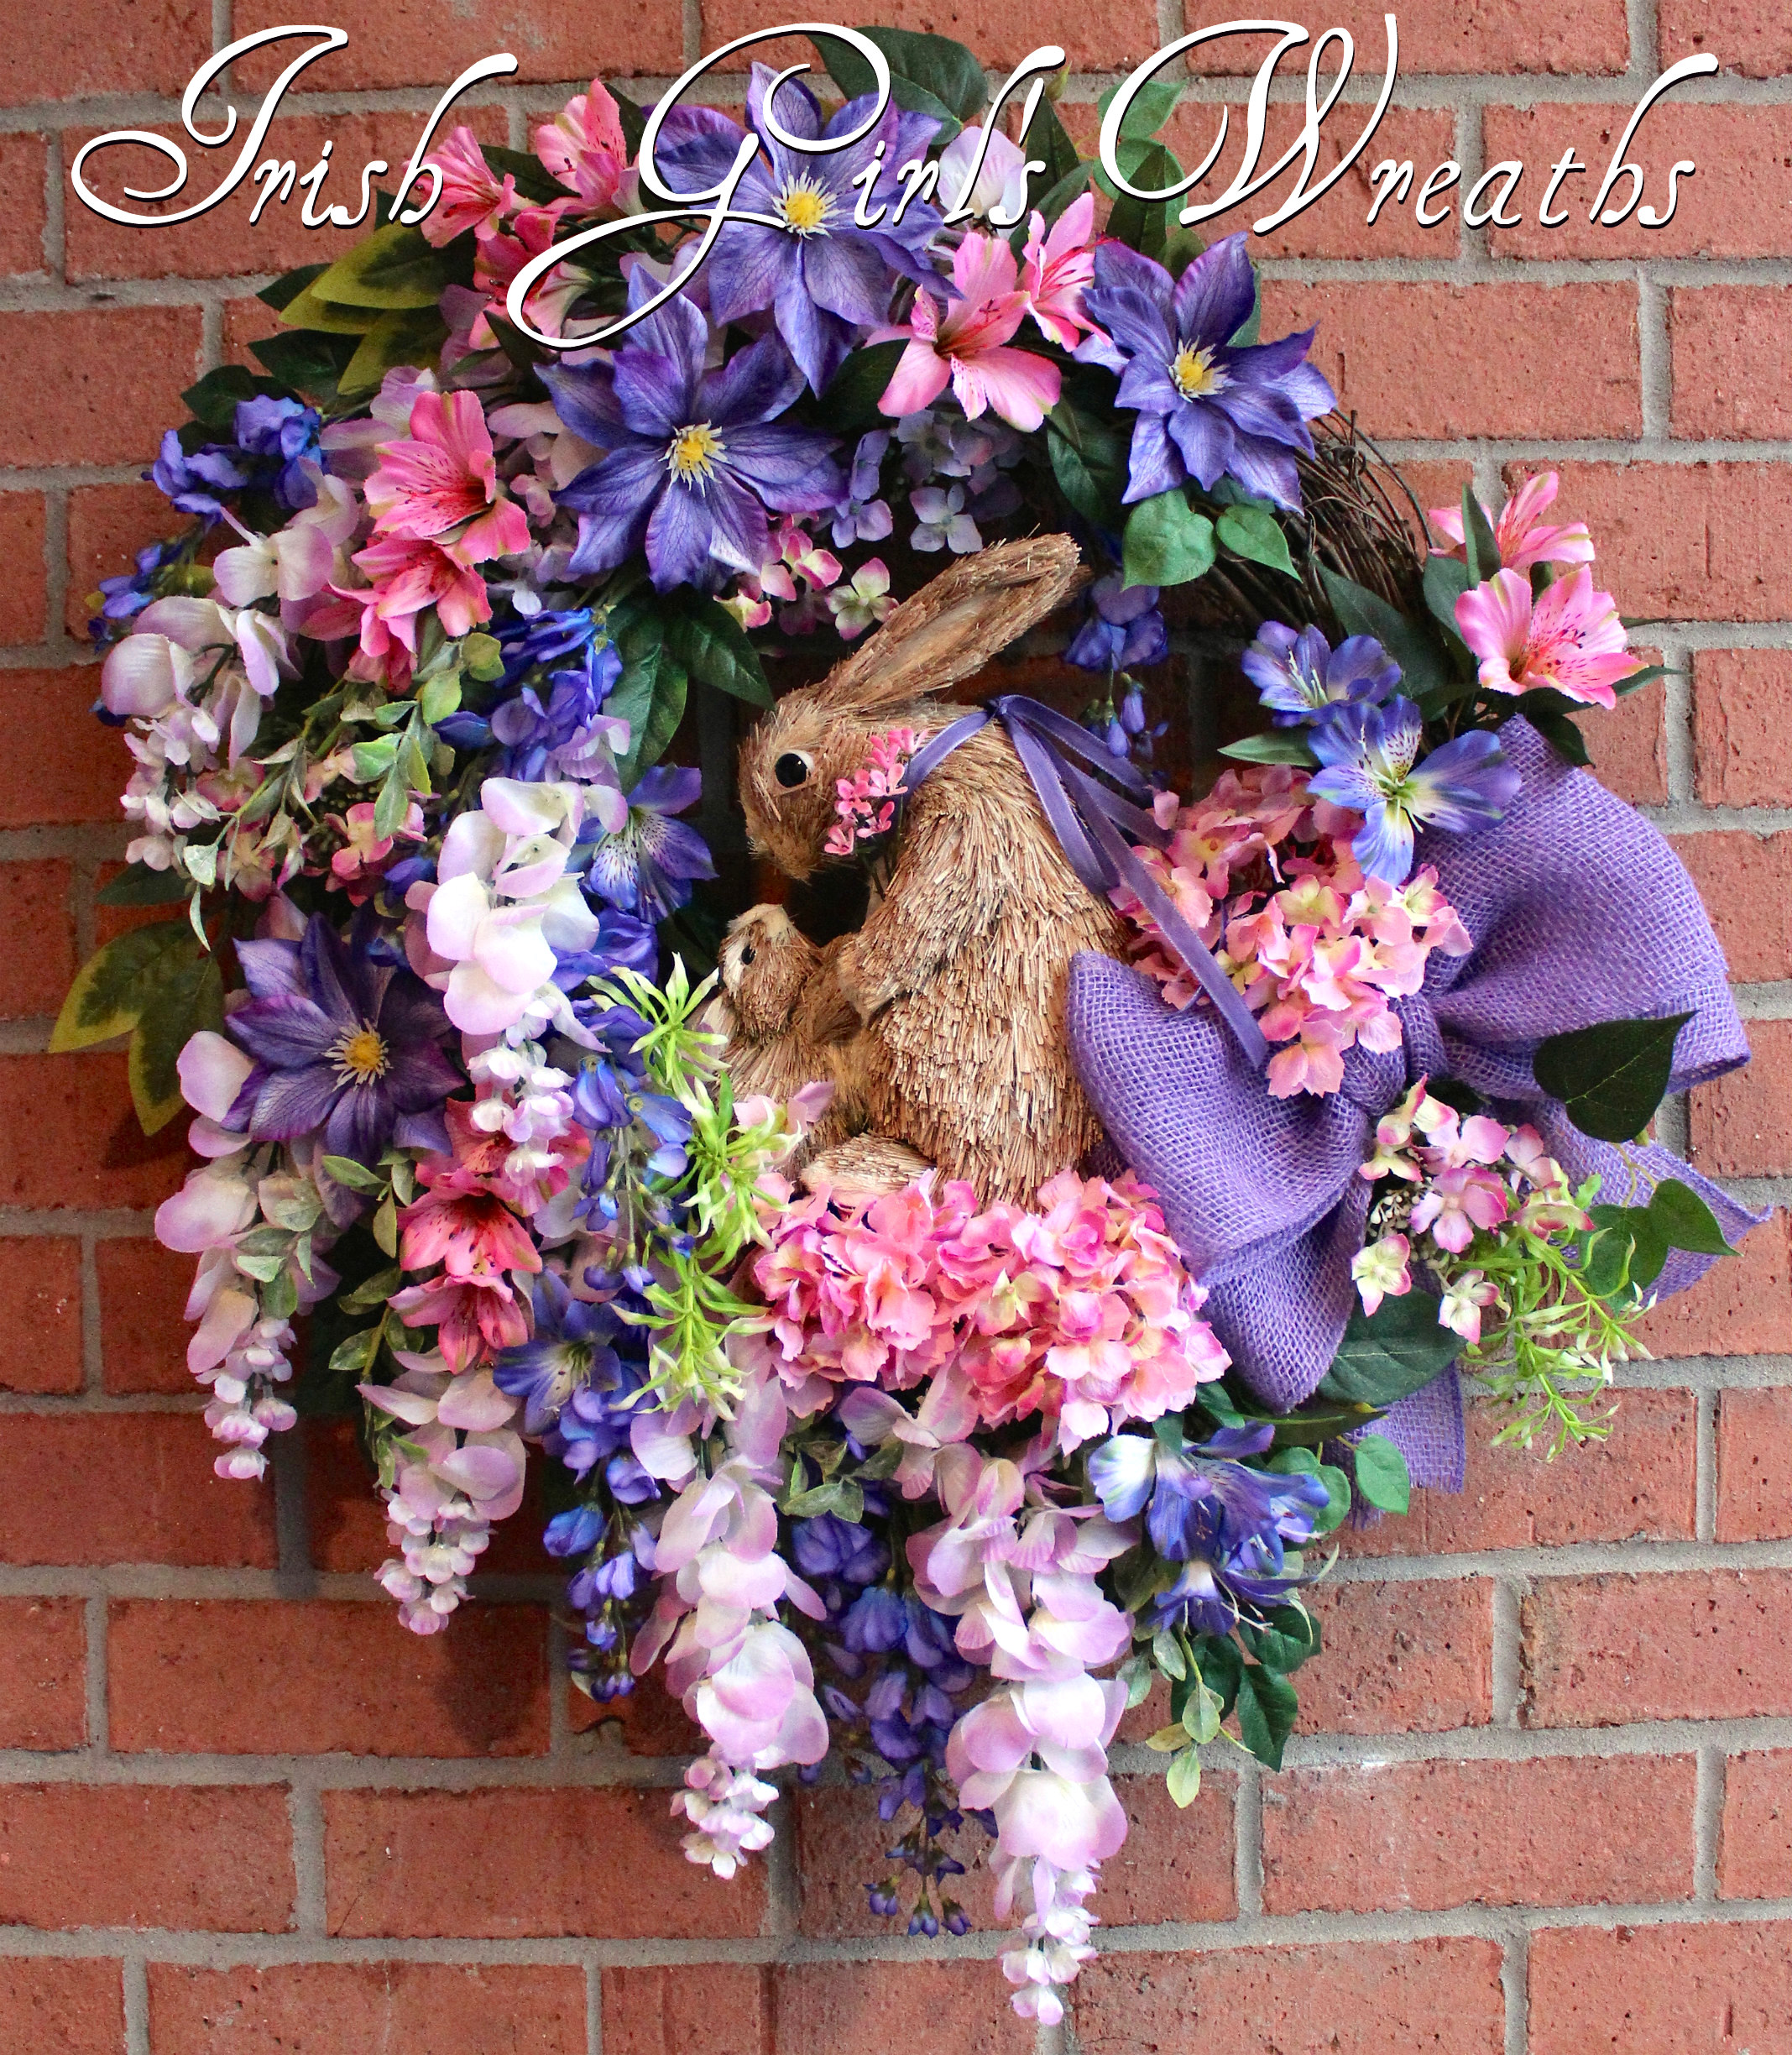 Purple and Lavender Wisteria Spring Bunnies Wreath